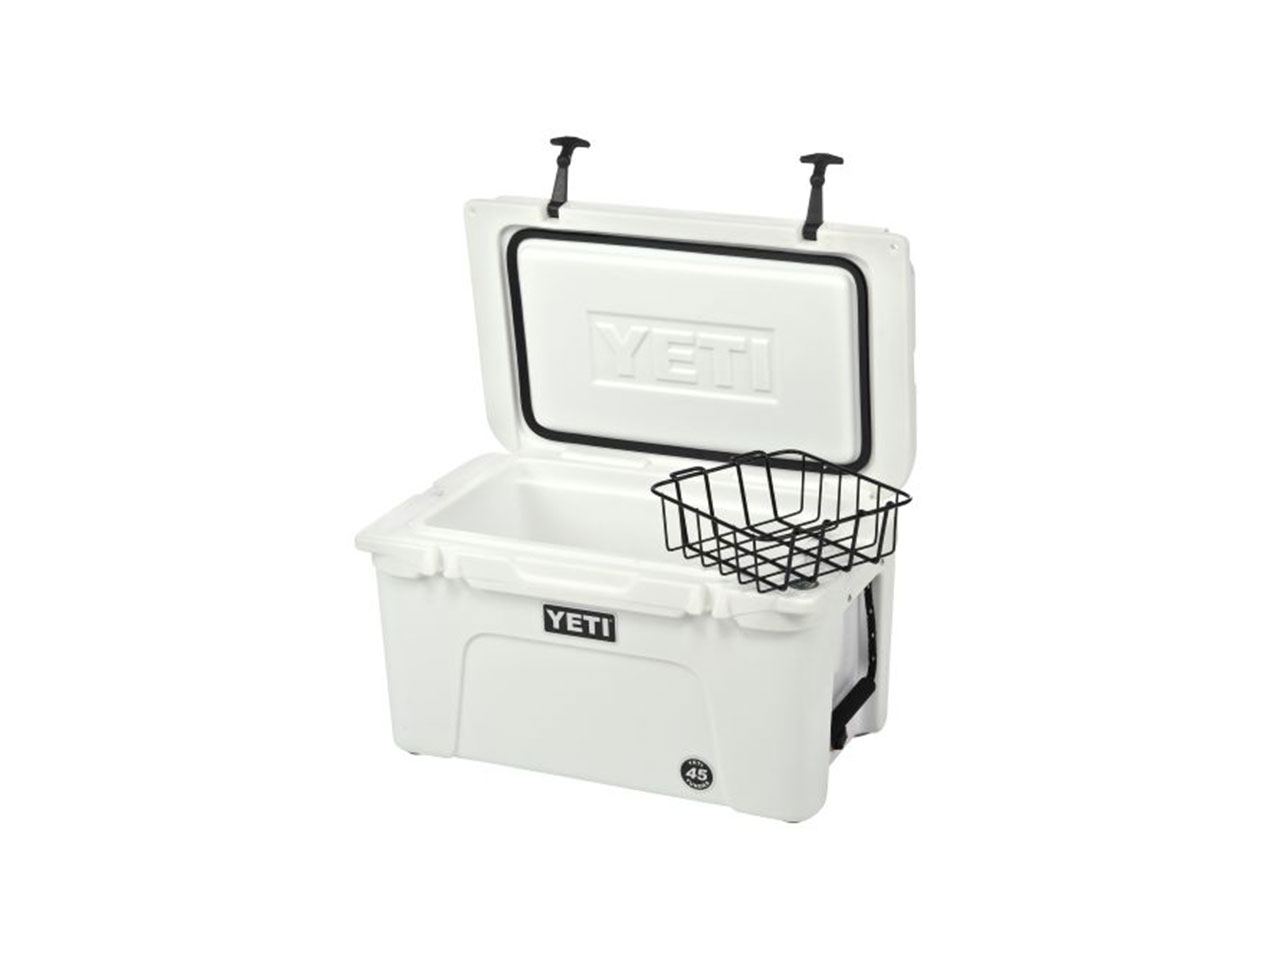 Yeti vs  OtterBox Cooler Test: Which Holds Ice Longer?